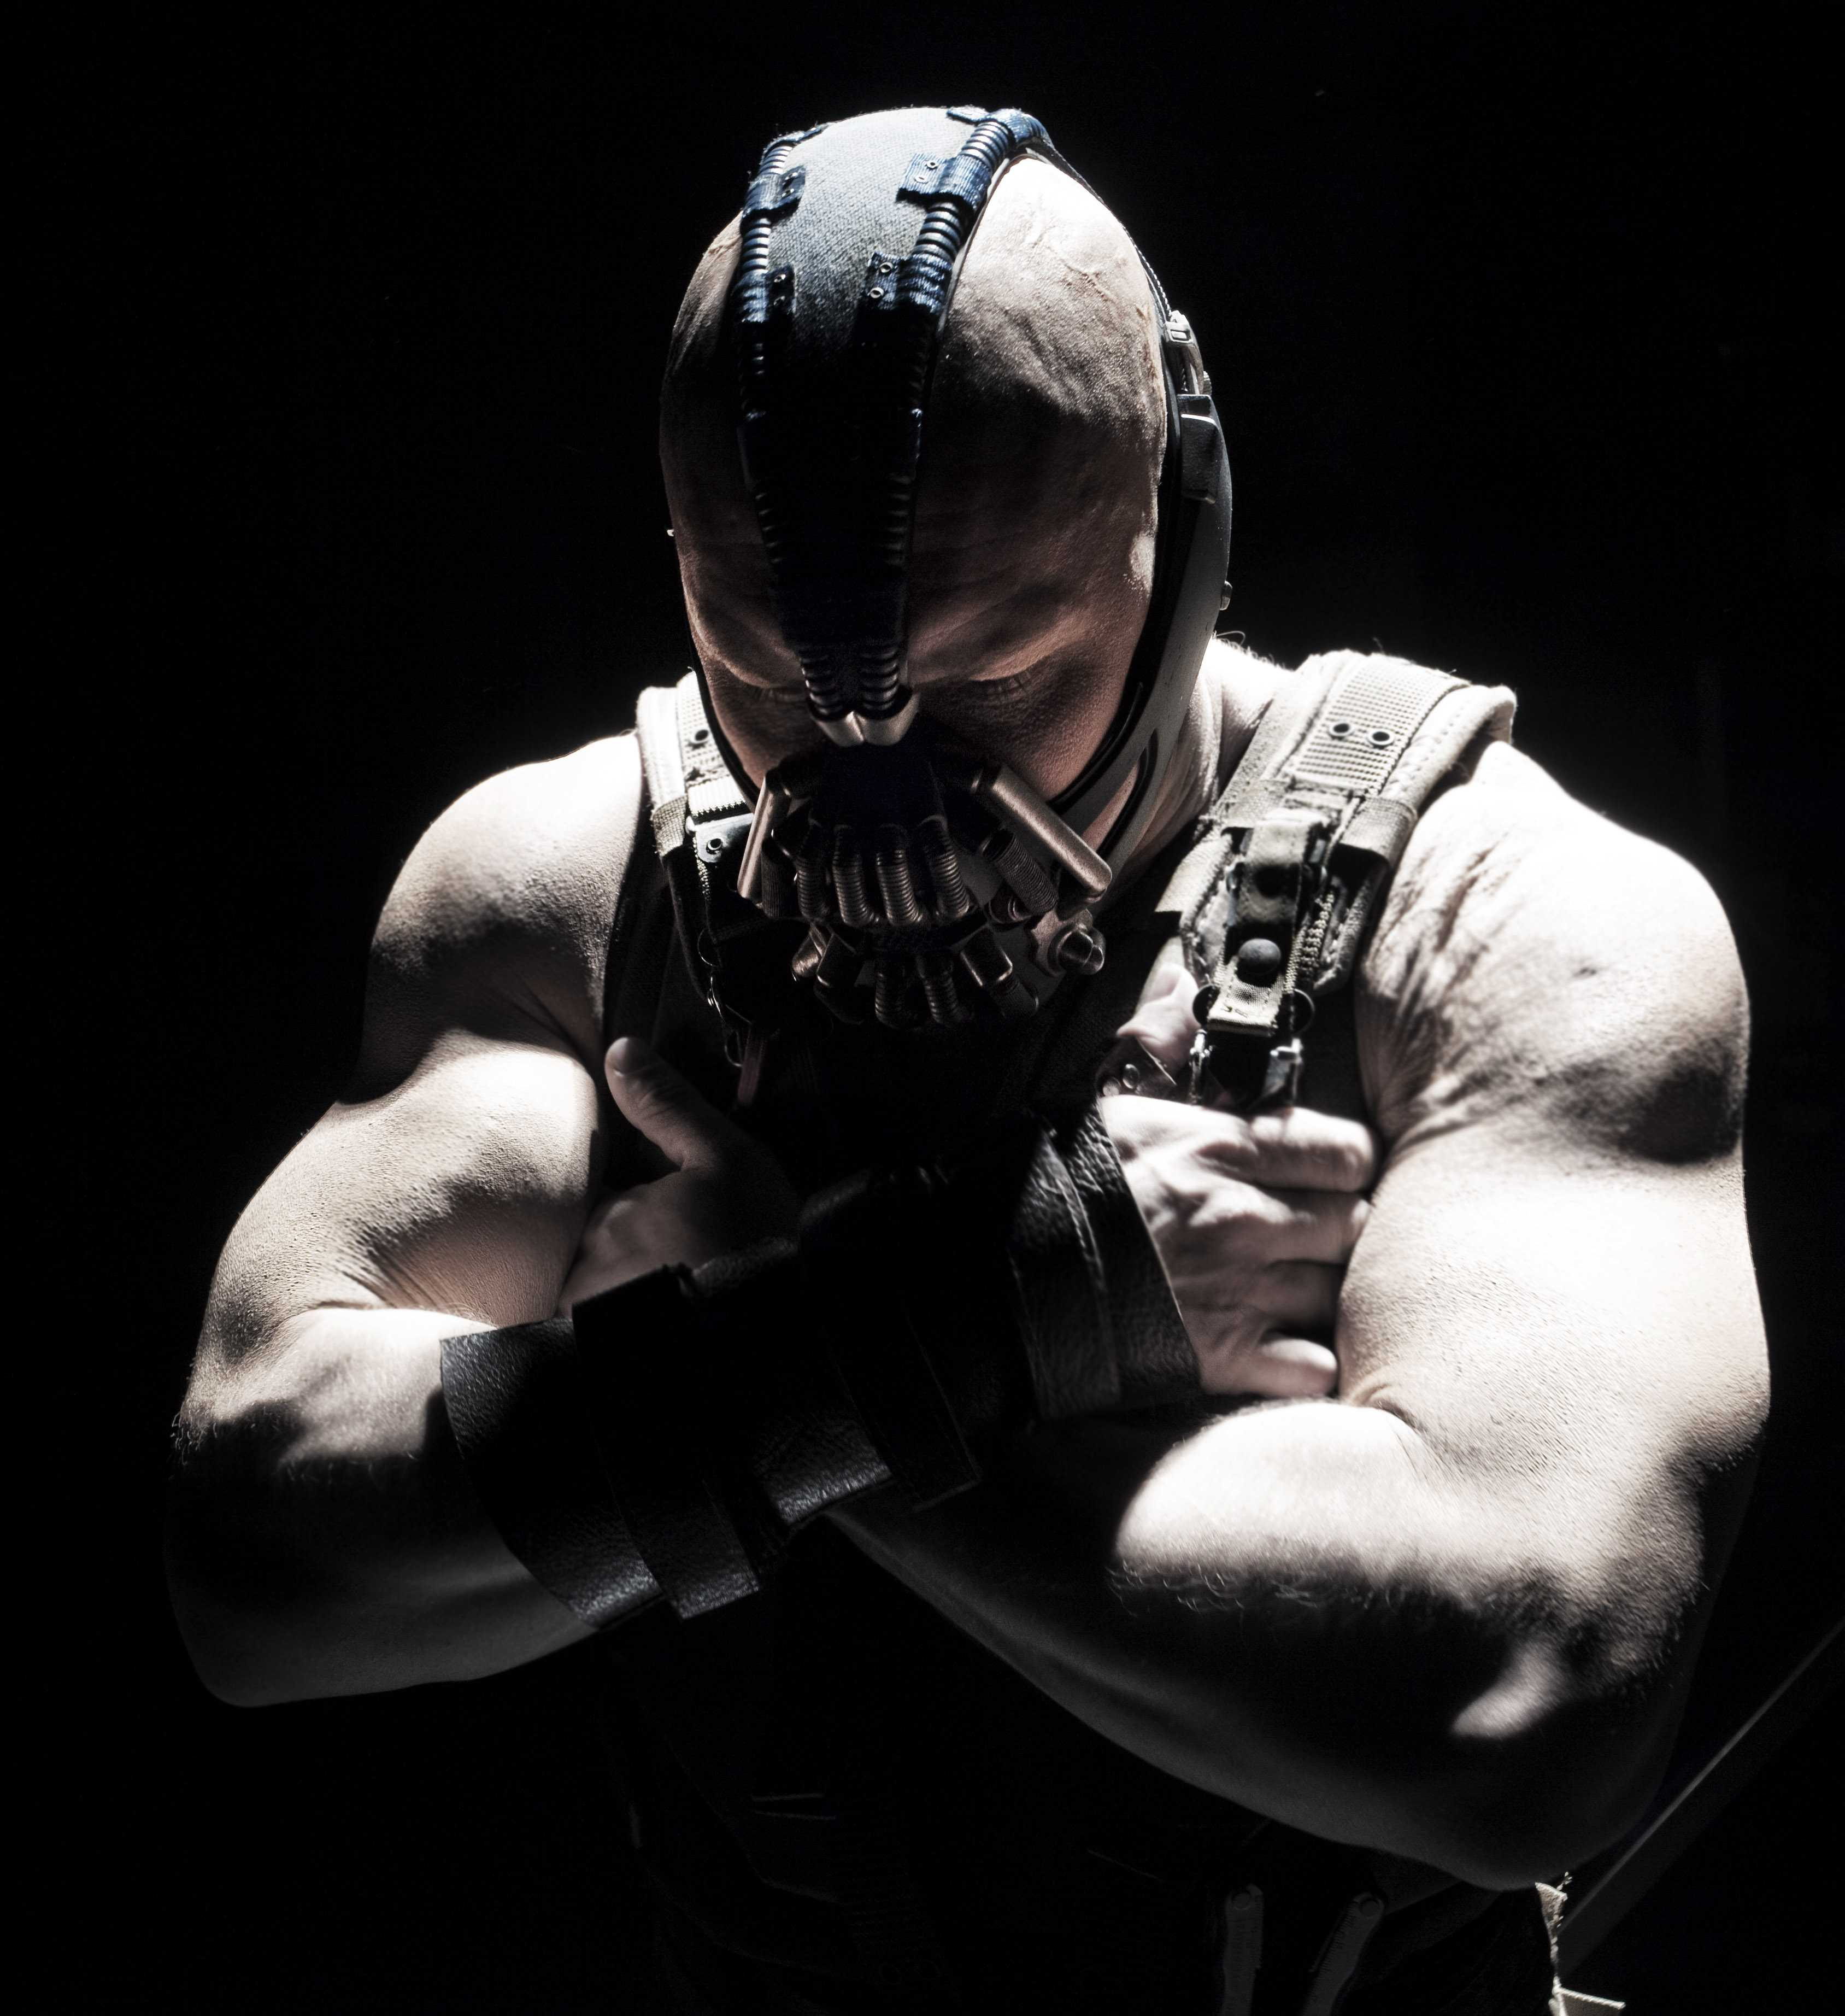 """Tom Hardy as Bane in the 2012 film """"The Dark Knight Rises."""" In an interview with Men's Journal, Hardy made a veiled reference to using PEDs to bulk up for the role. Photo courtesy of Protozoa Pictures."""